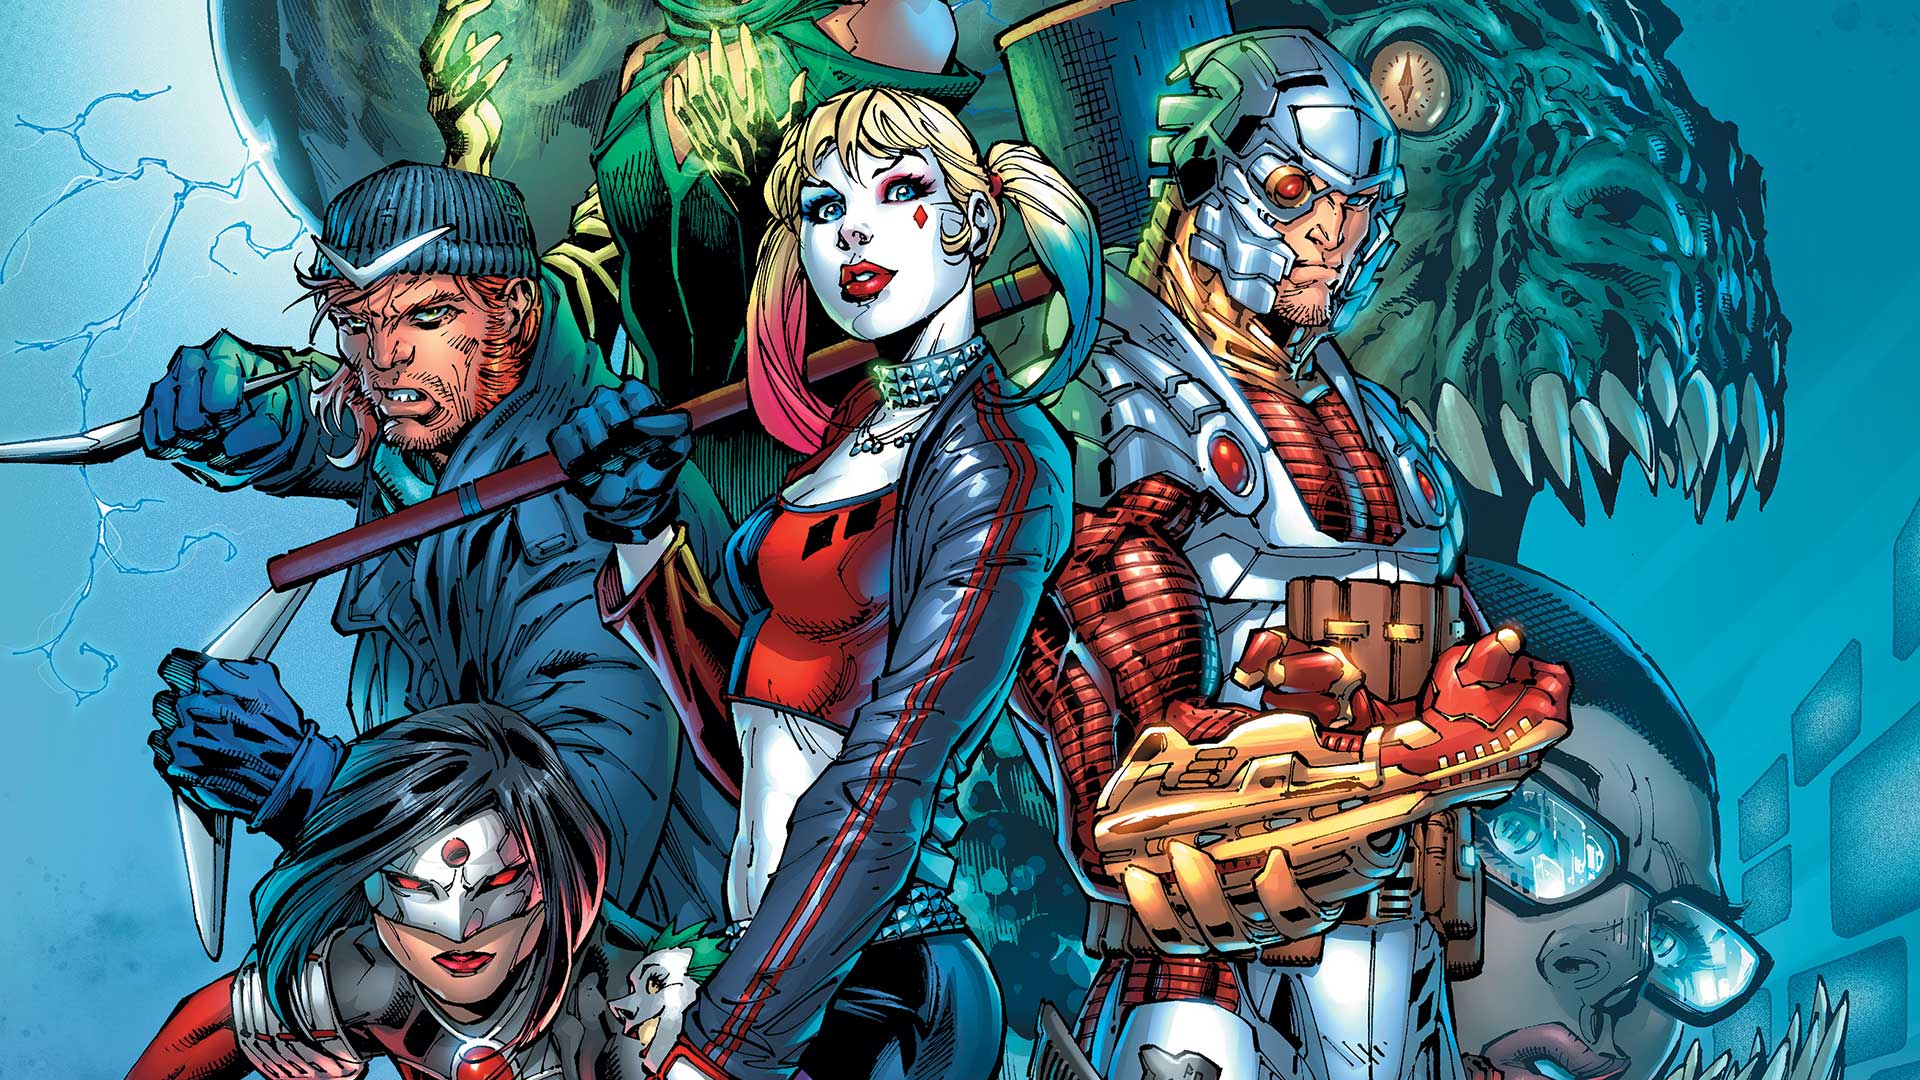 'Suicide Squad' #1 Introduces the Squad (Again)